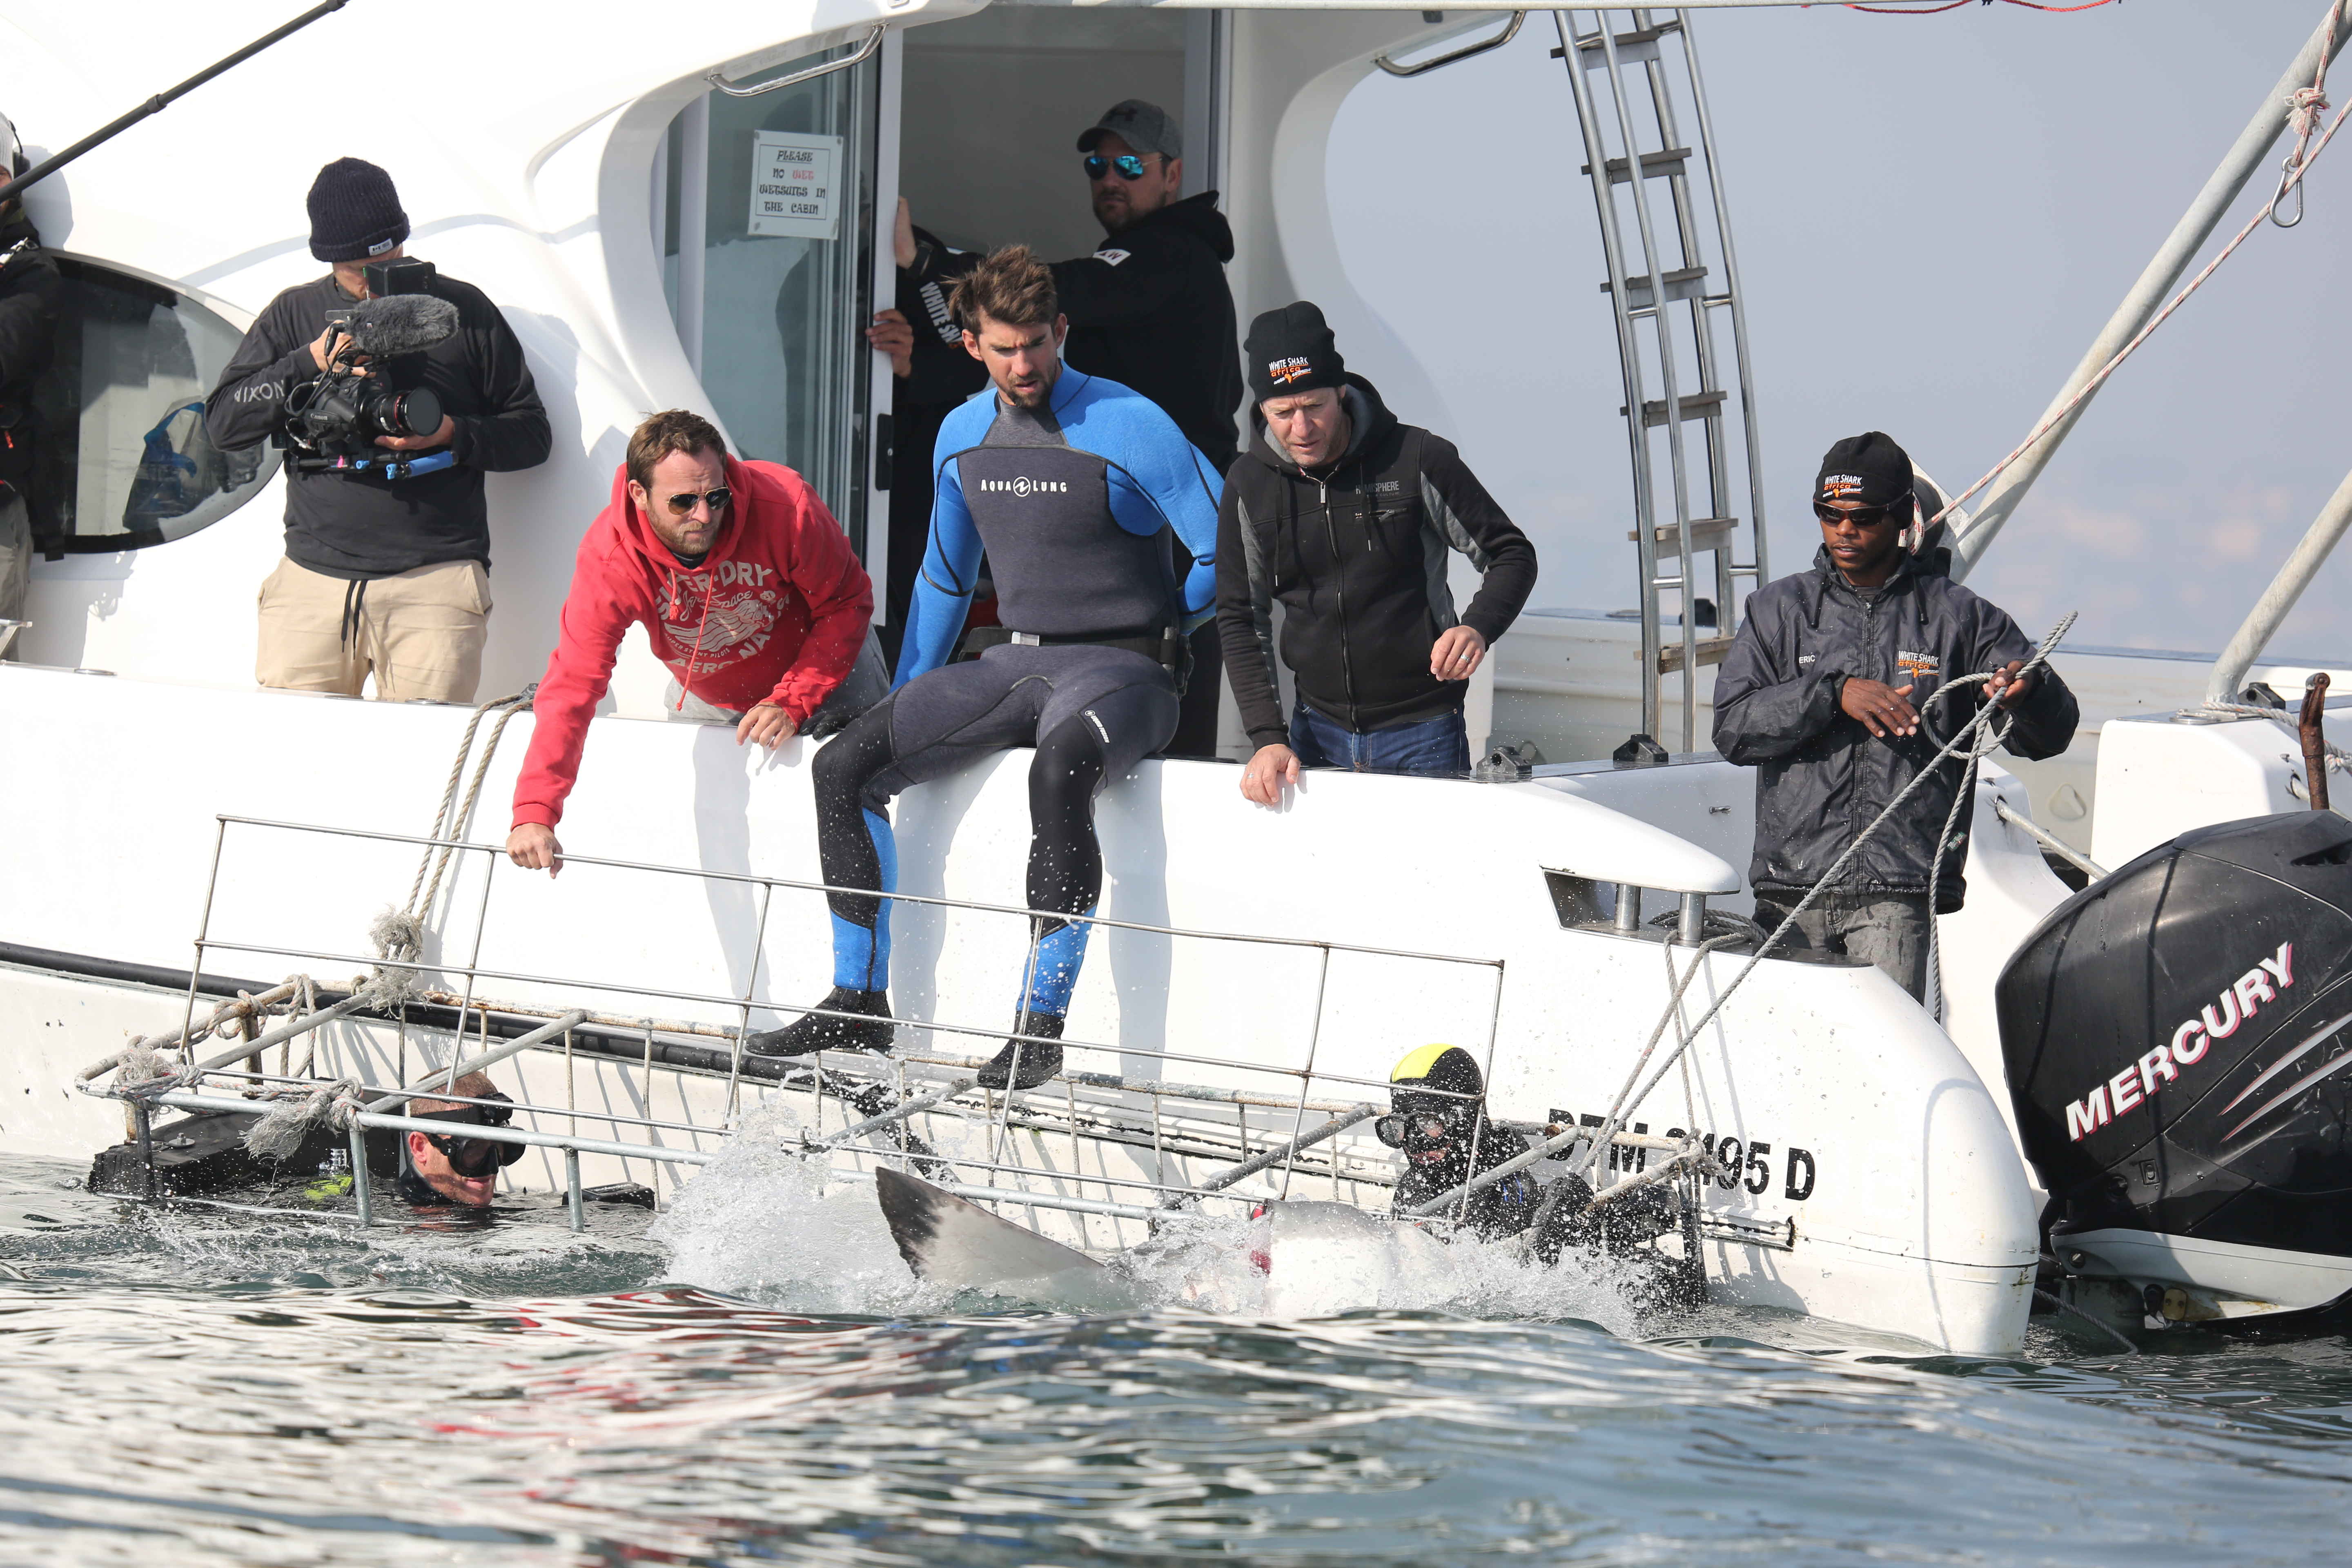 Phelps and the crew watch a shark approach the cage, which Michael is about to enter.